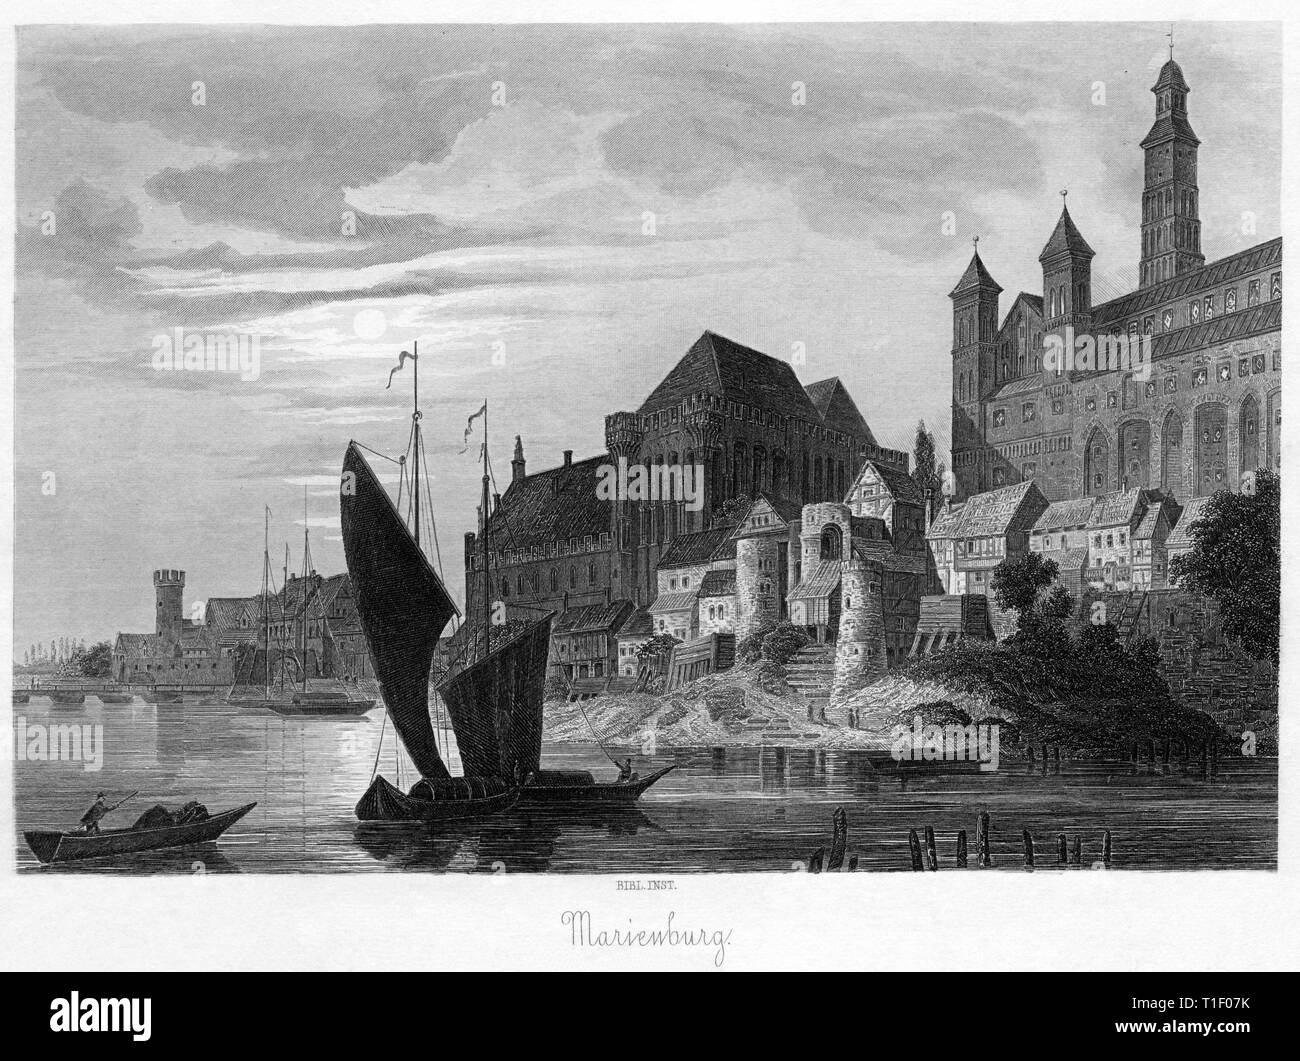 Poland, Woiwodschaft Pomerania, Malbork Castle, in the foreground the Nogat, steel engraving from the Bibliographischen Institut, around 1850., Artist's Copyright has not to be cleared - Stock Image